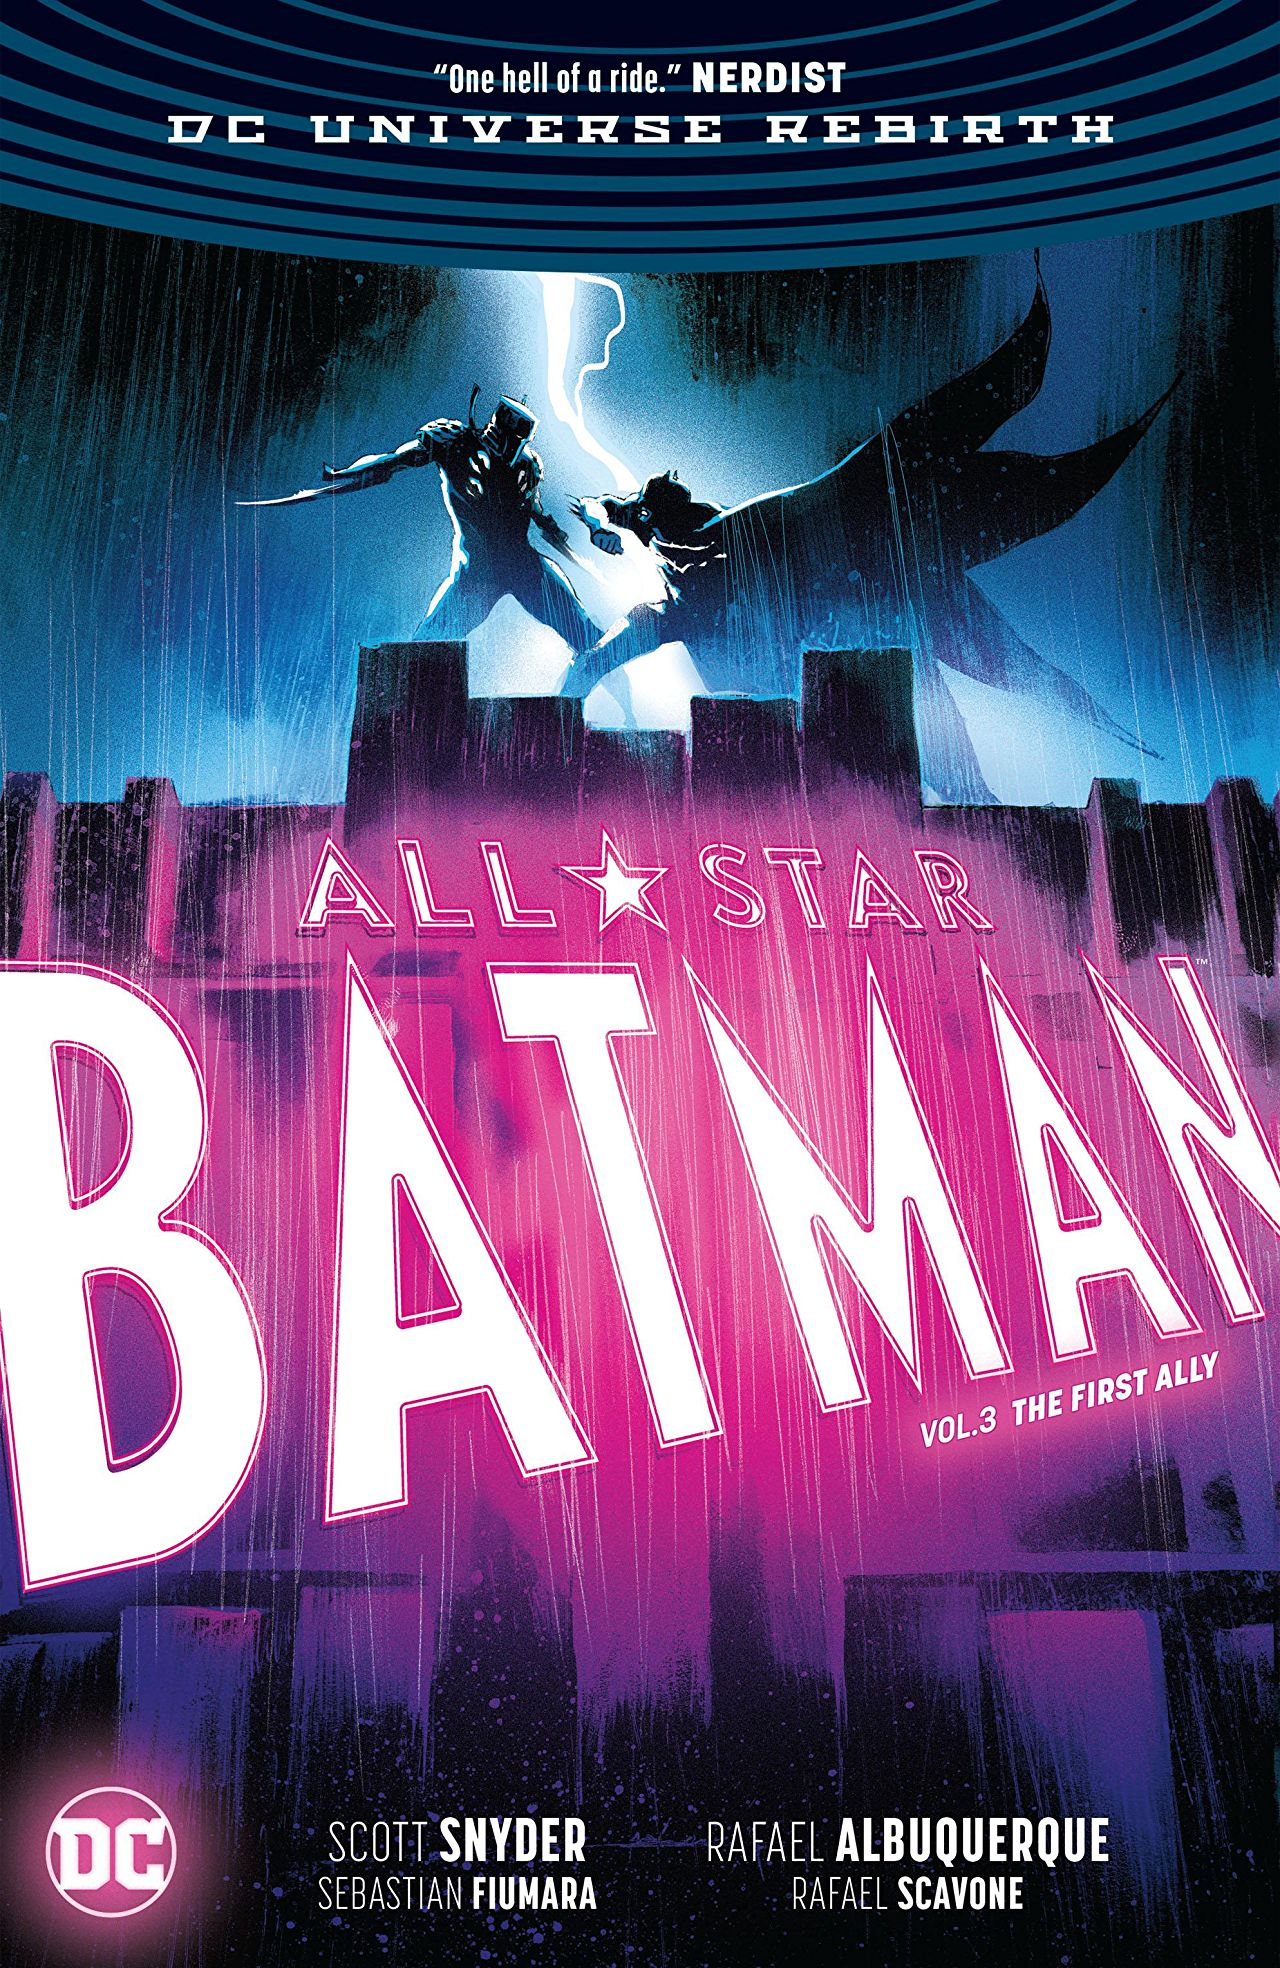 'All-Star Batman Vol. 3: The First Ally' offers a new look at one of Batman's most trusted colleagues